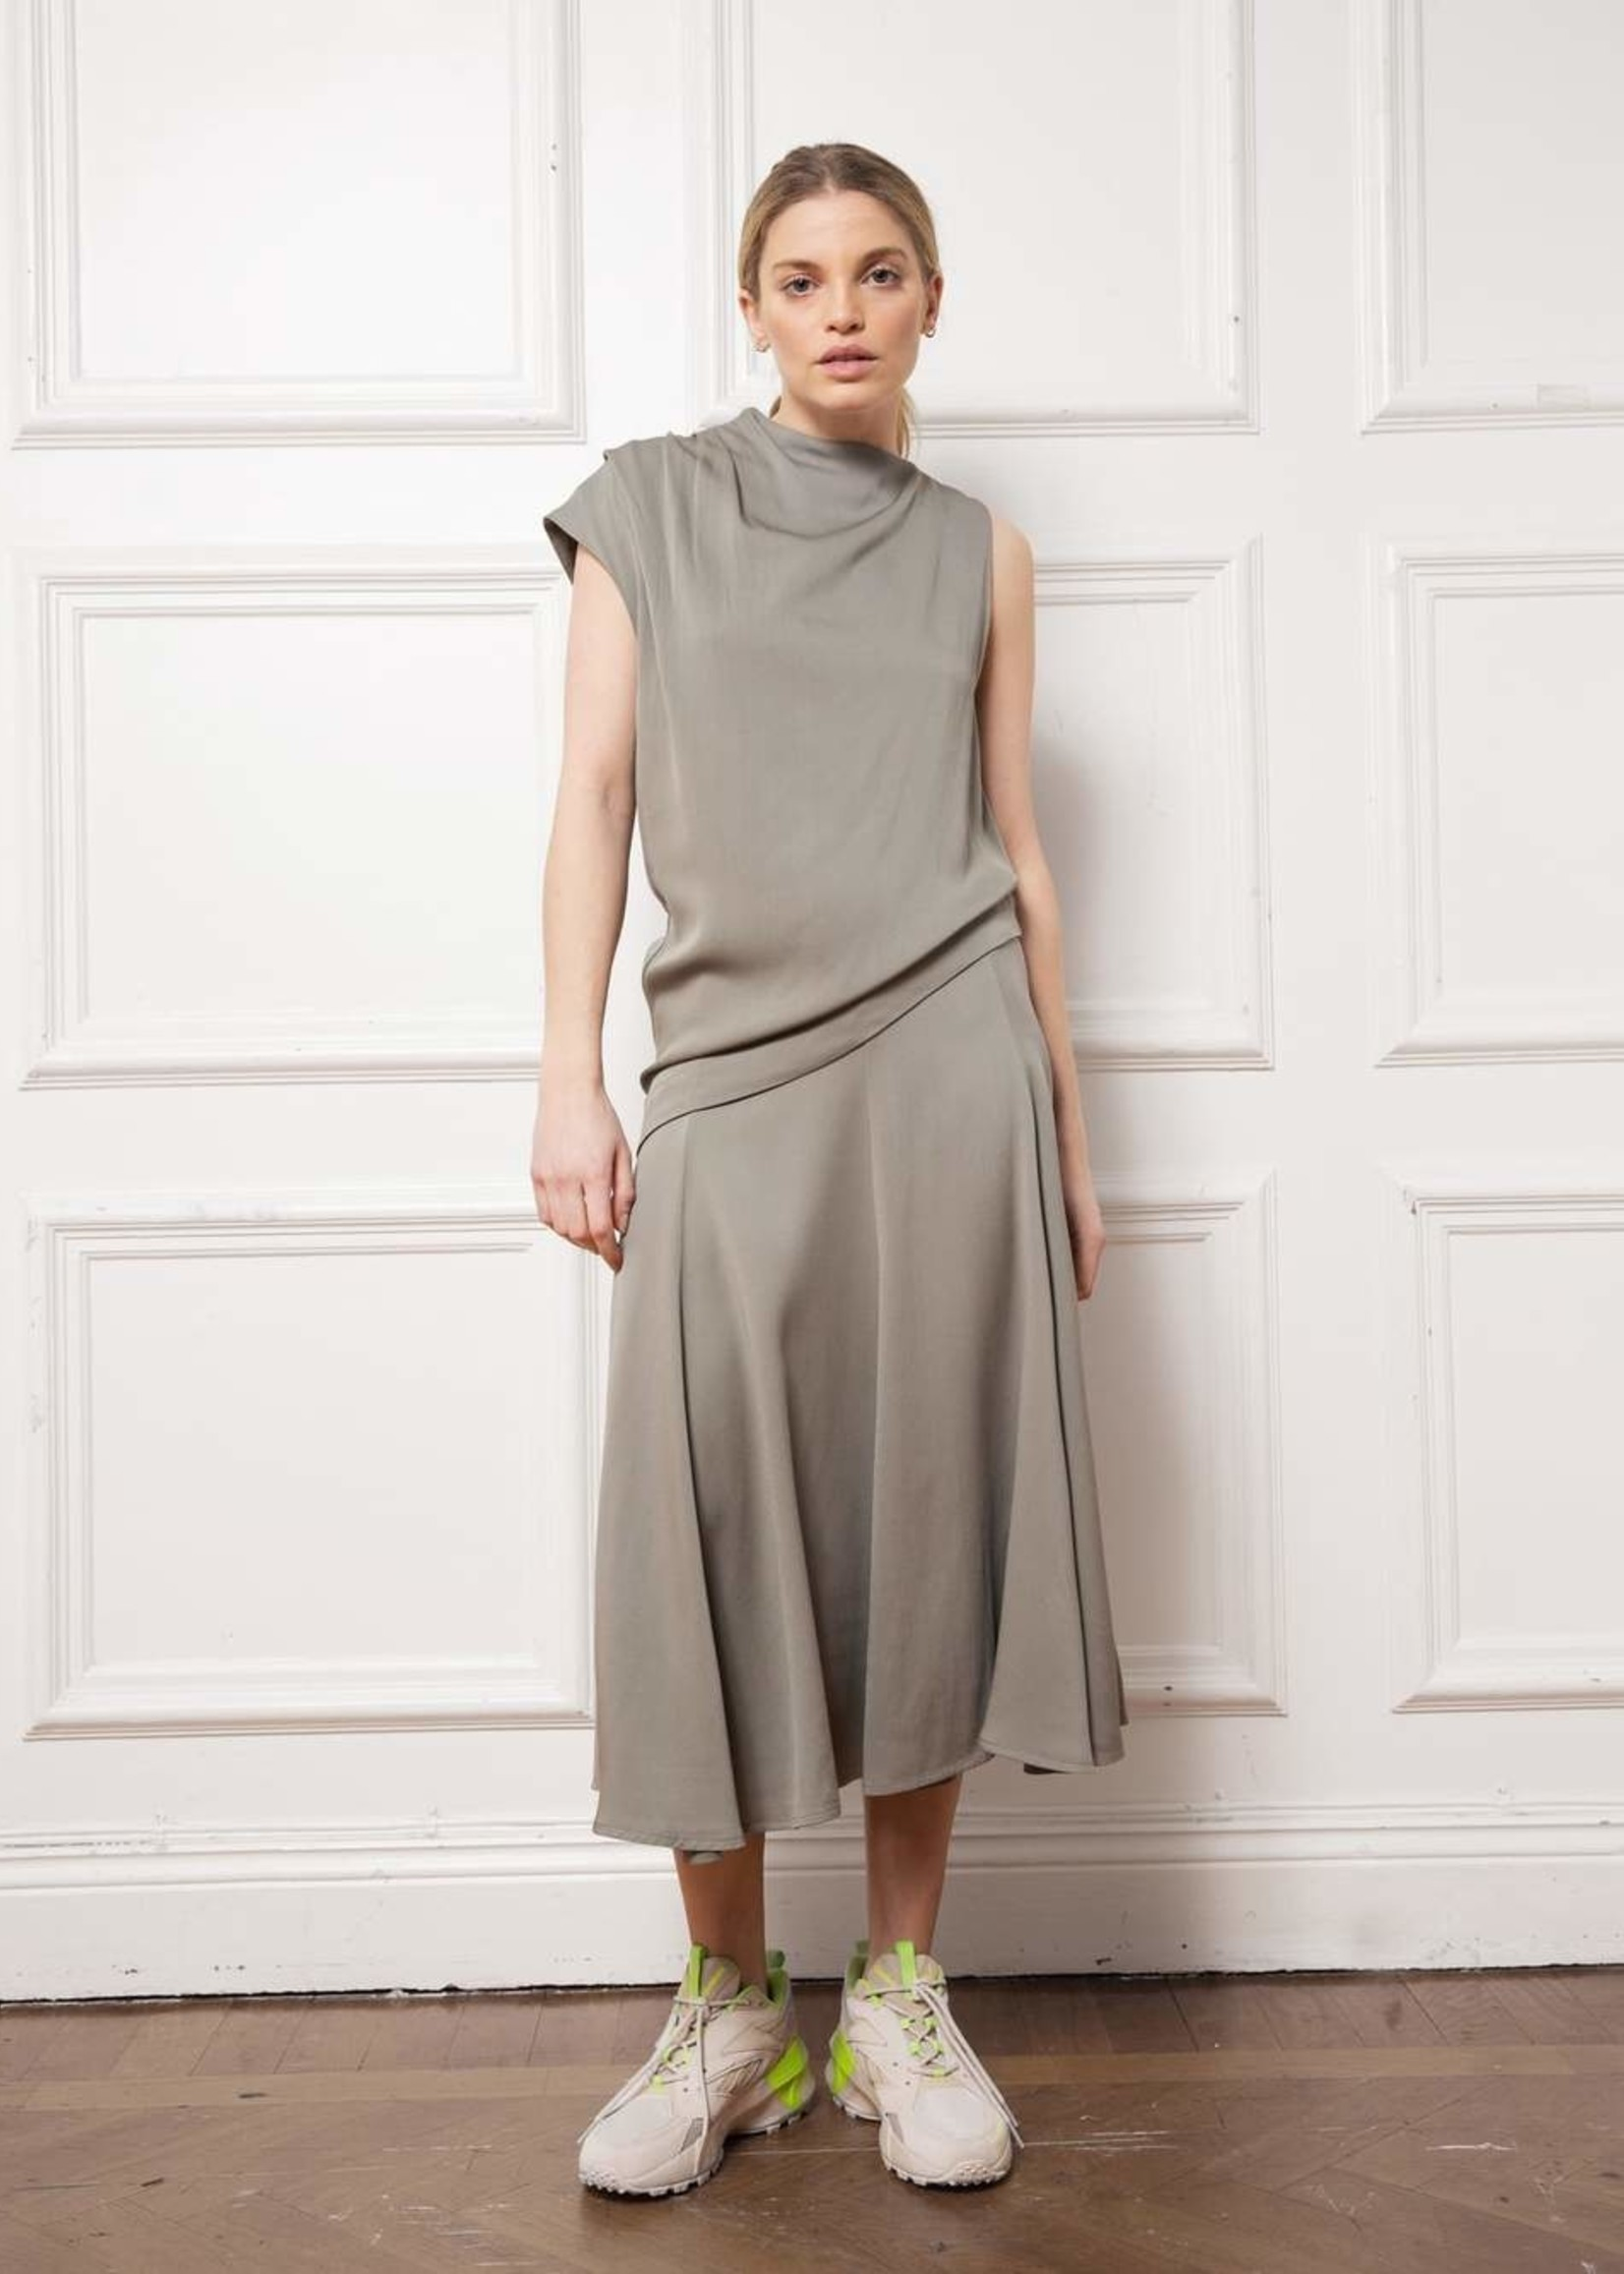 Ahlvar gallery  ofelia skirt , light military